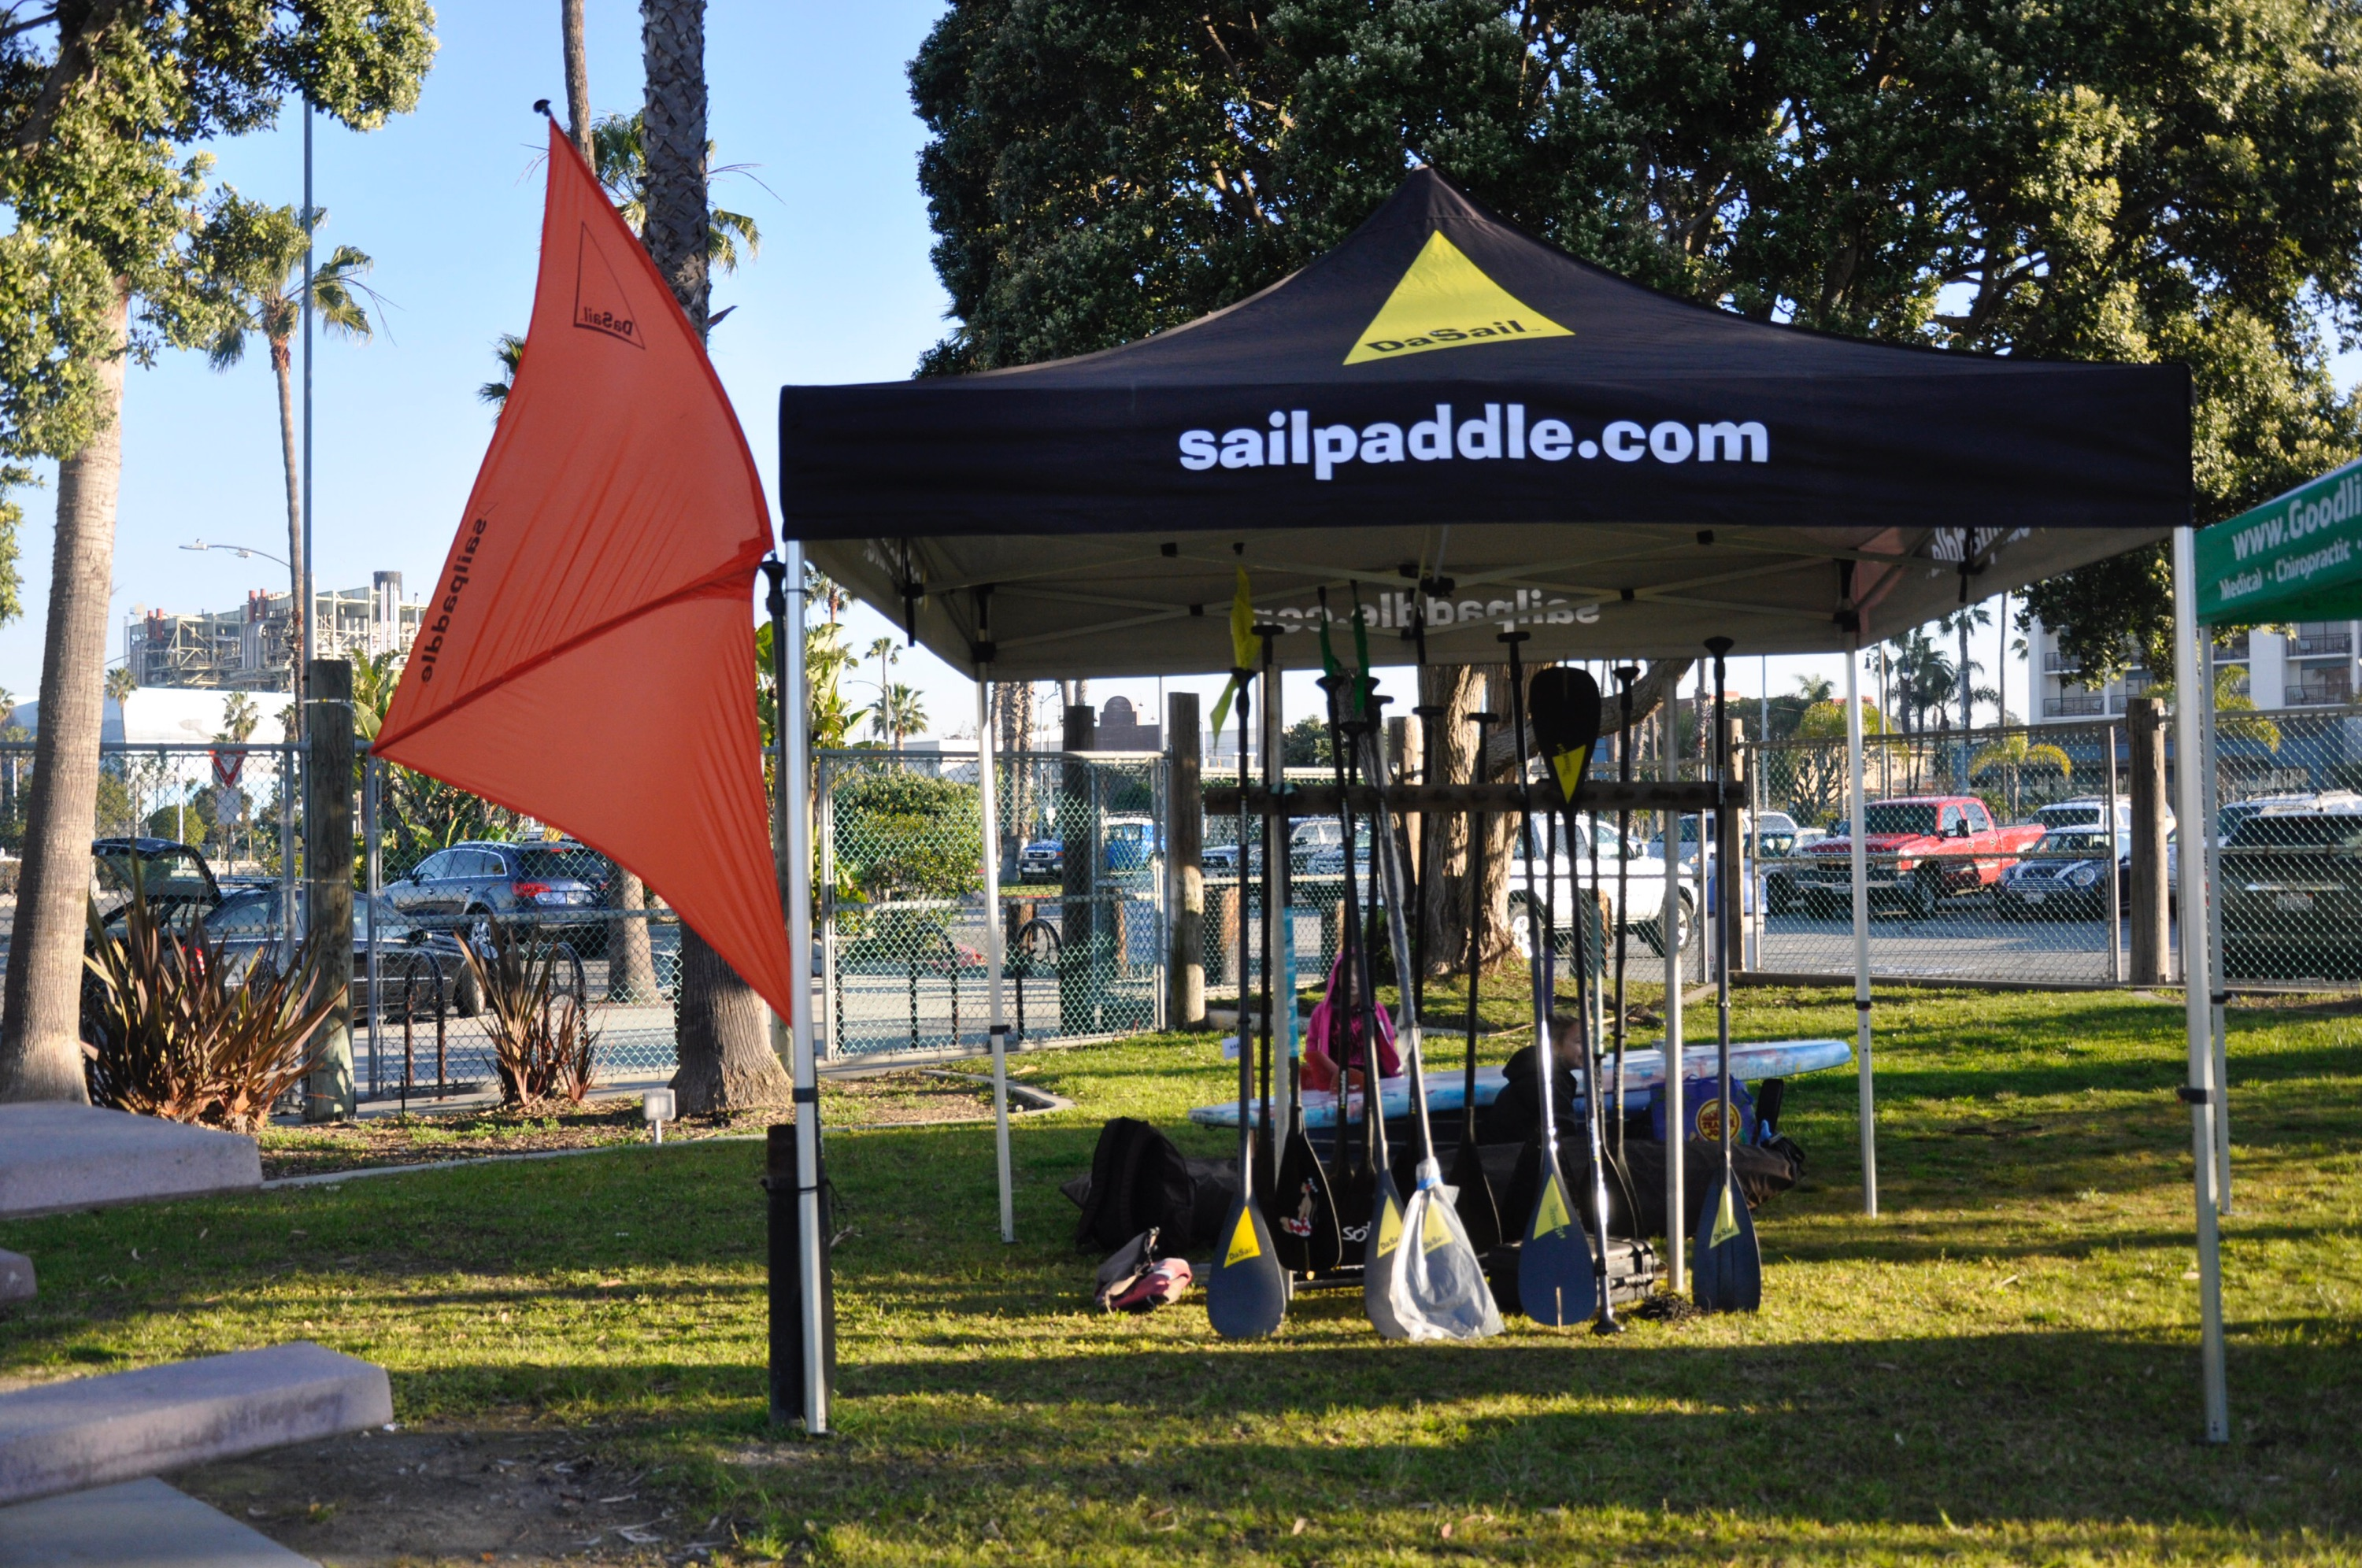 Sailpaddle - Innovative Products